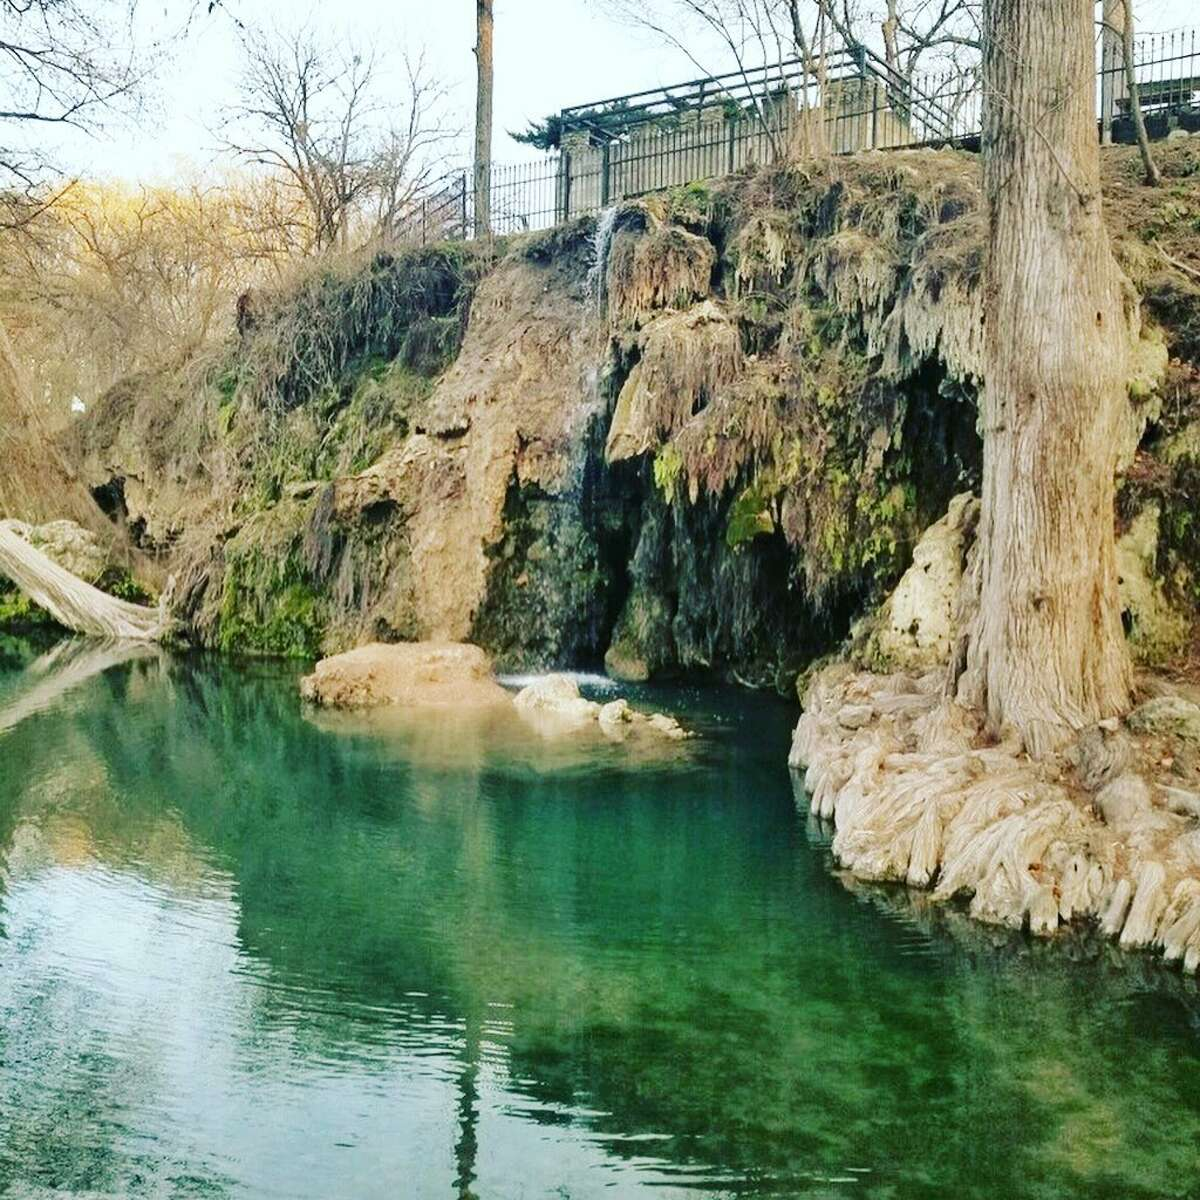 Popular Hill Country swimming and camping site Krause Springs opened on Monday and is ready for the public to enjoy its grounds.